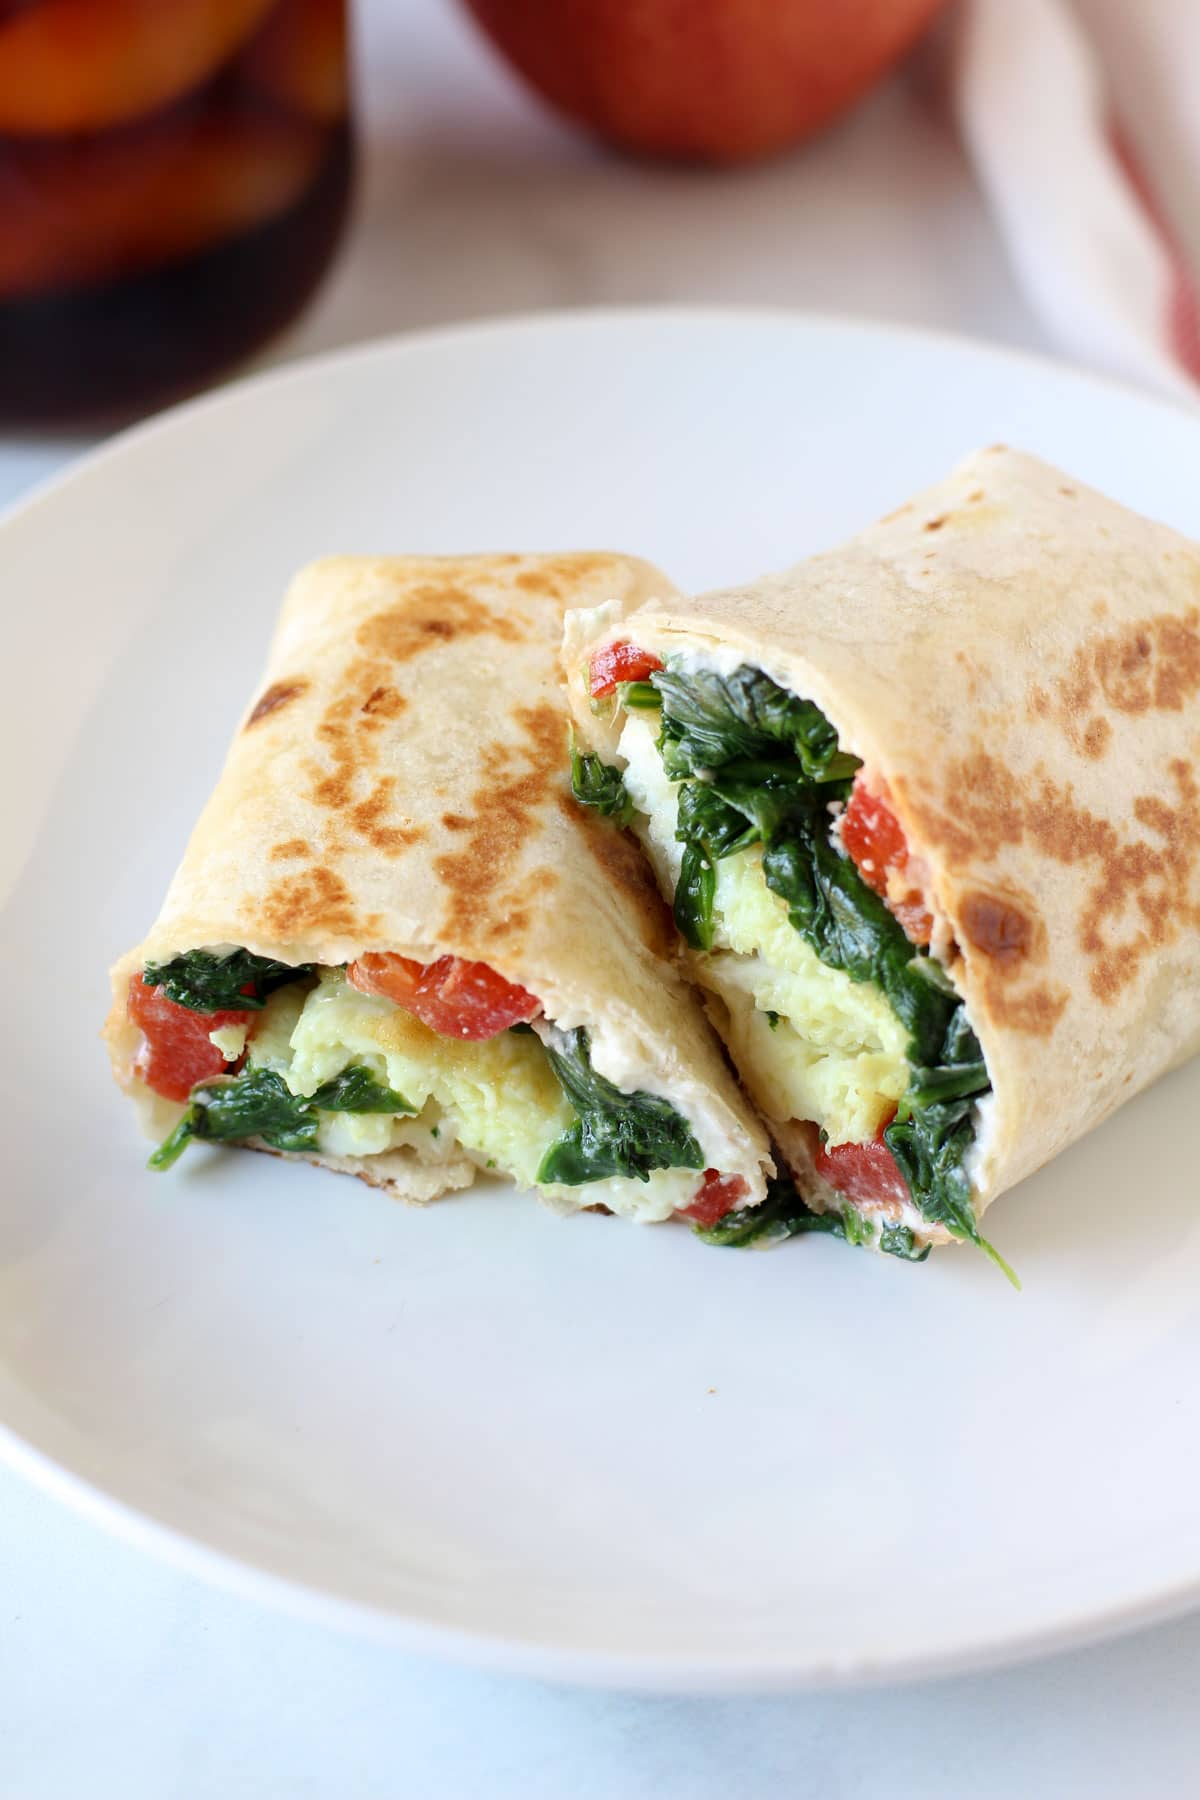 DIY Make Ahead Starbucks Feta Wrap Recipe - Gluten Free, Healthy